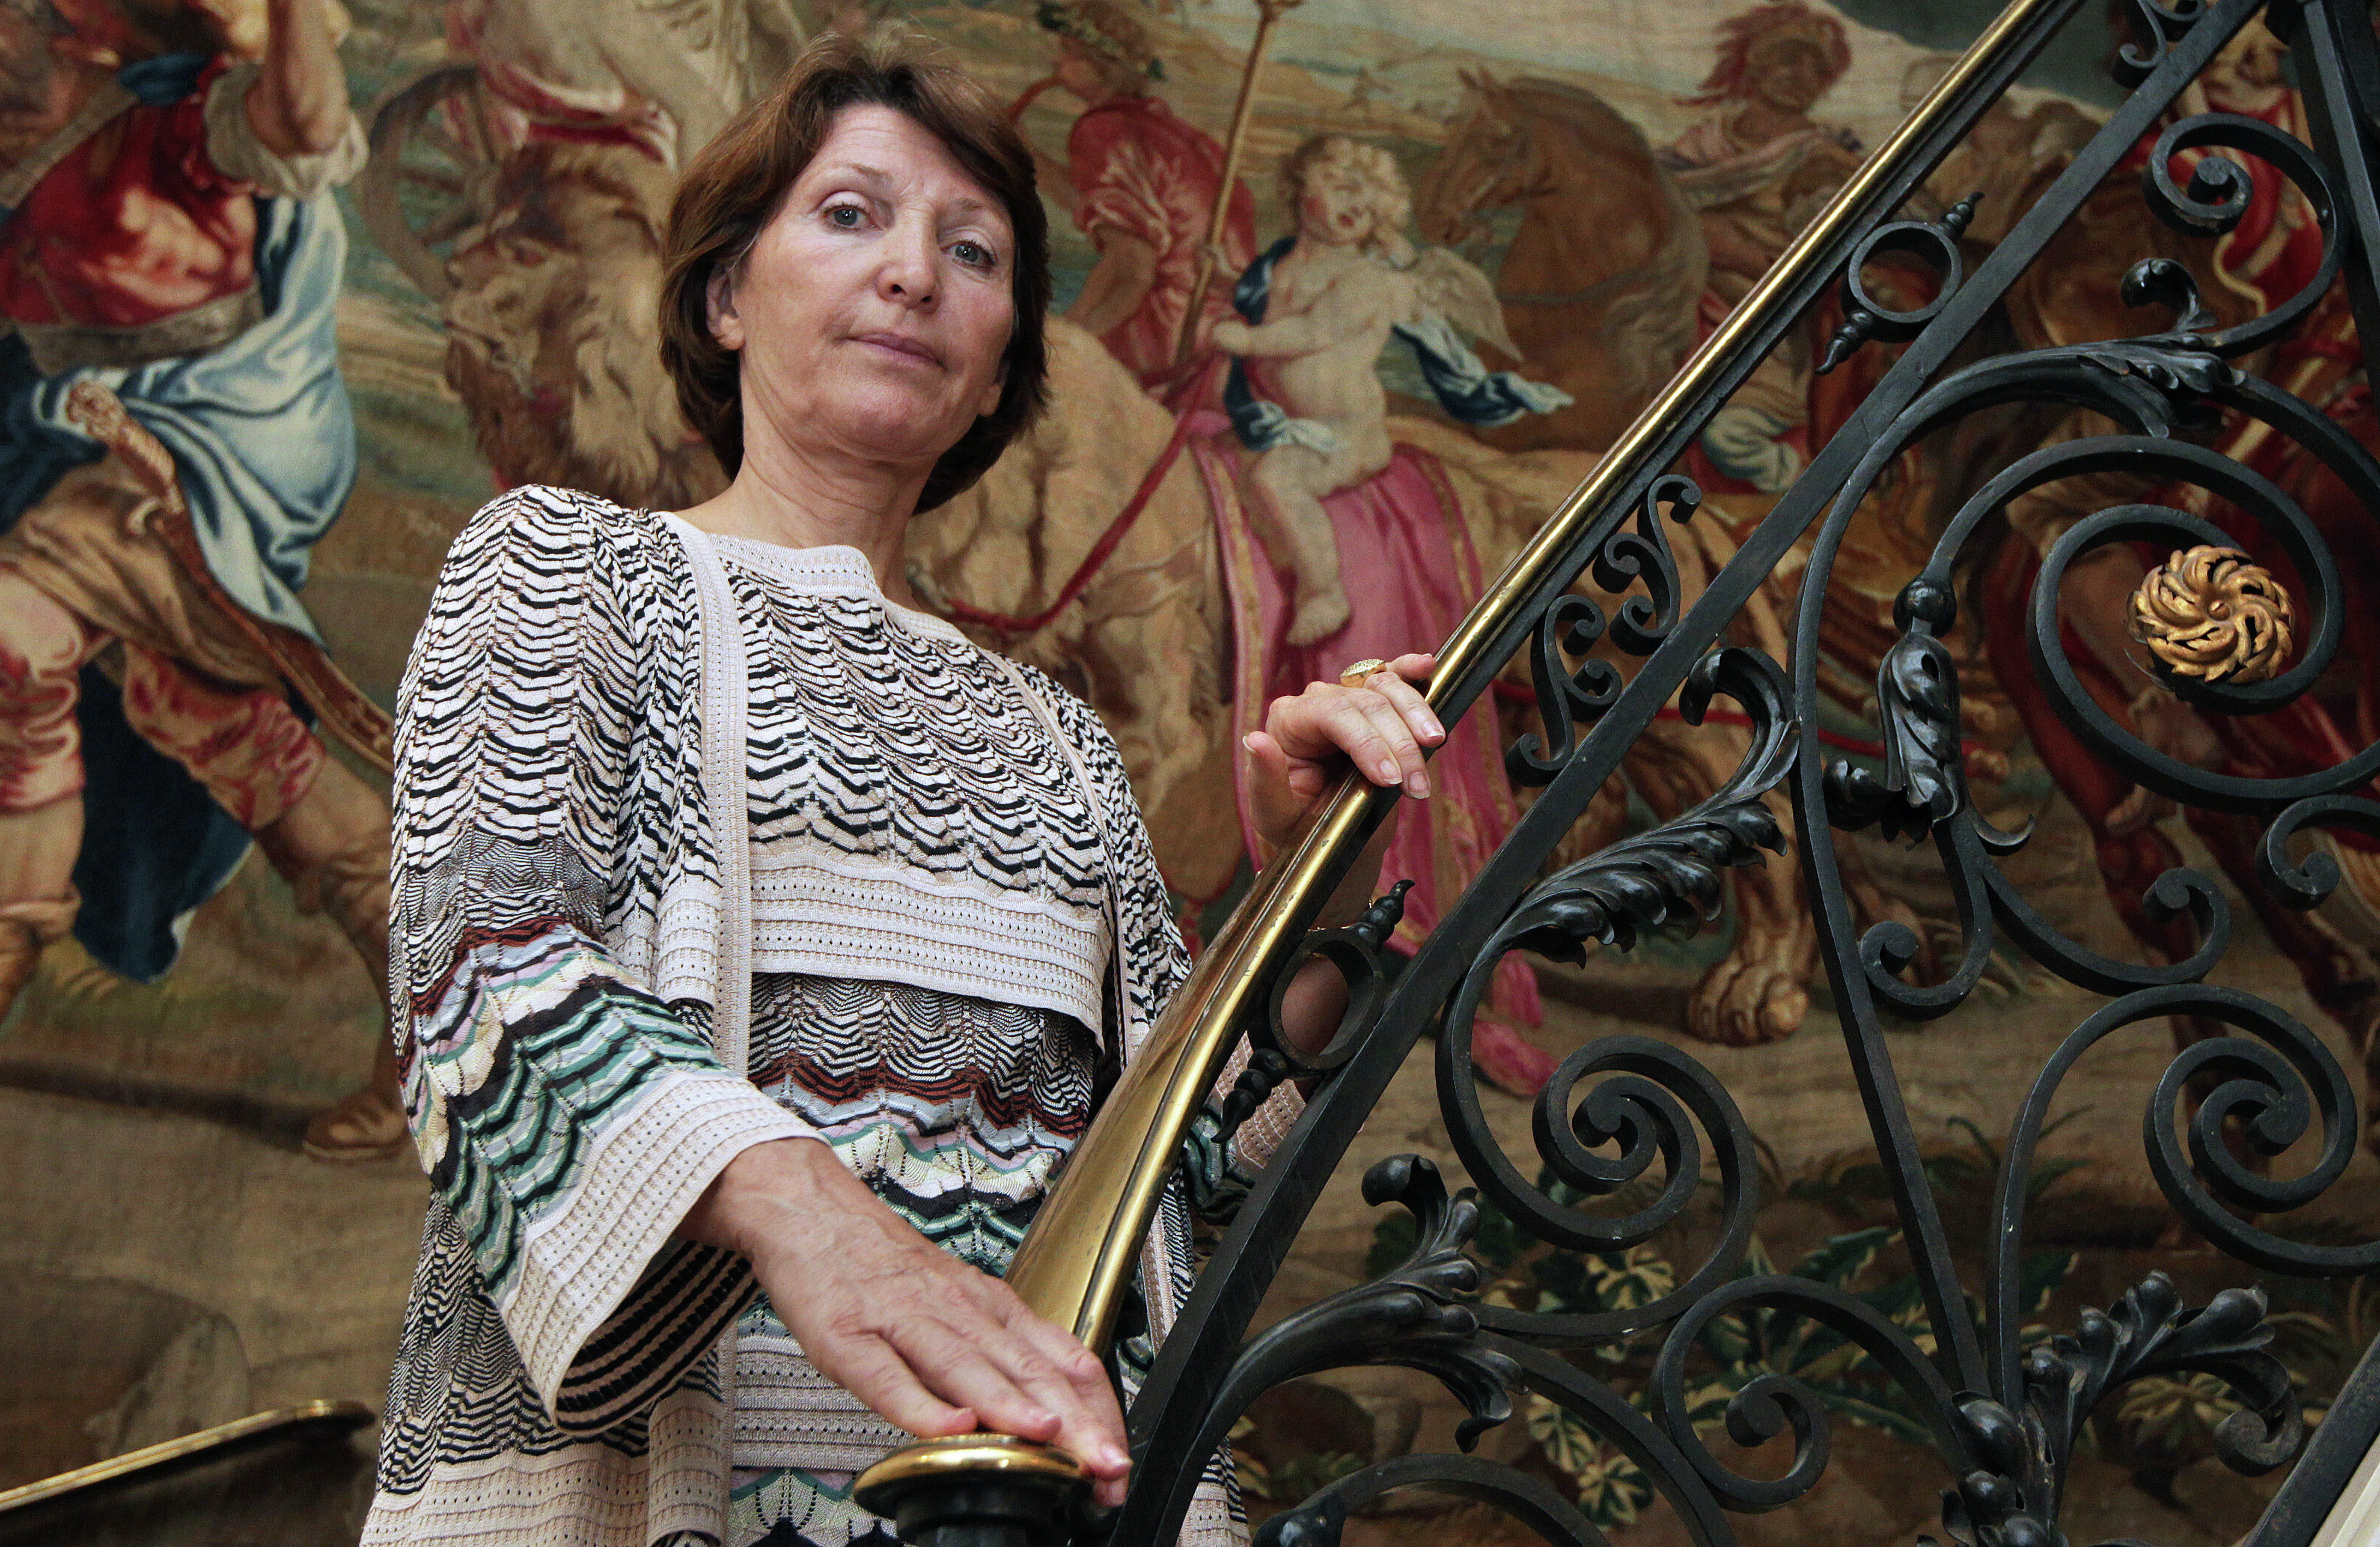 The granddaughter of Spanish painter Pablo Picasso, Marina Picasso, poses in her house Pavillon de Flore